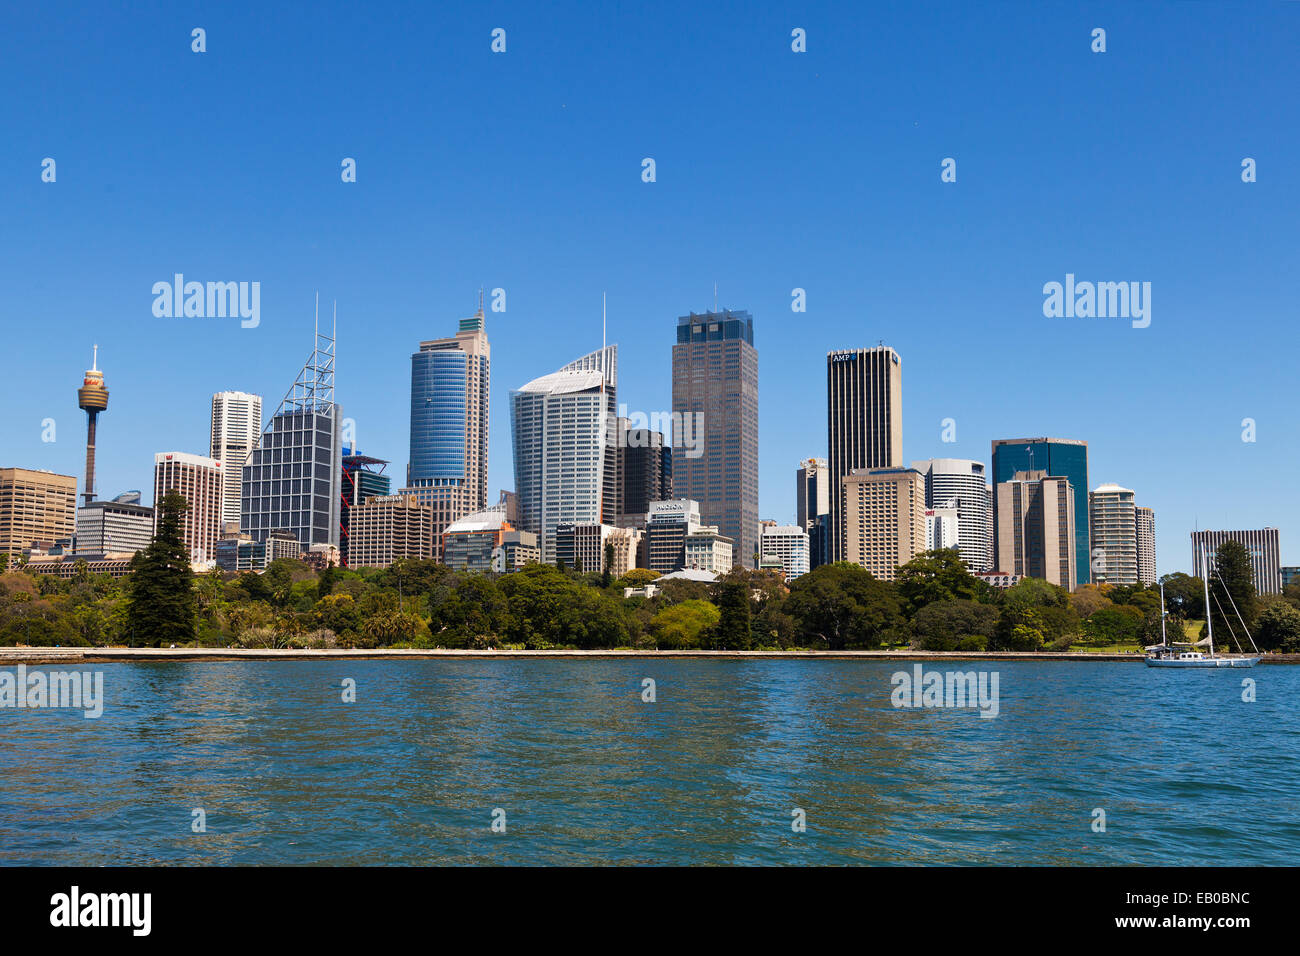 Sydney Harbour Skyscrapers in Central Buisness District NSW Australia - Stock Image